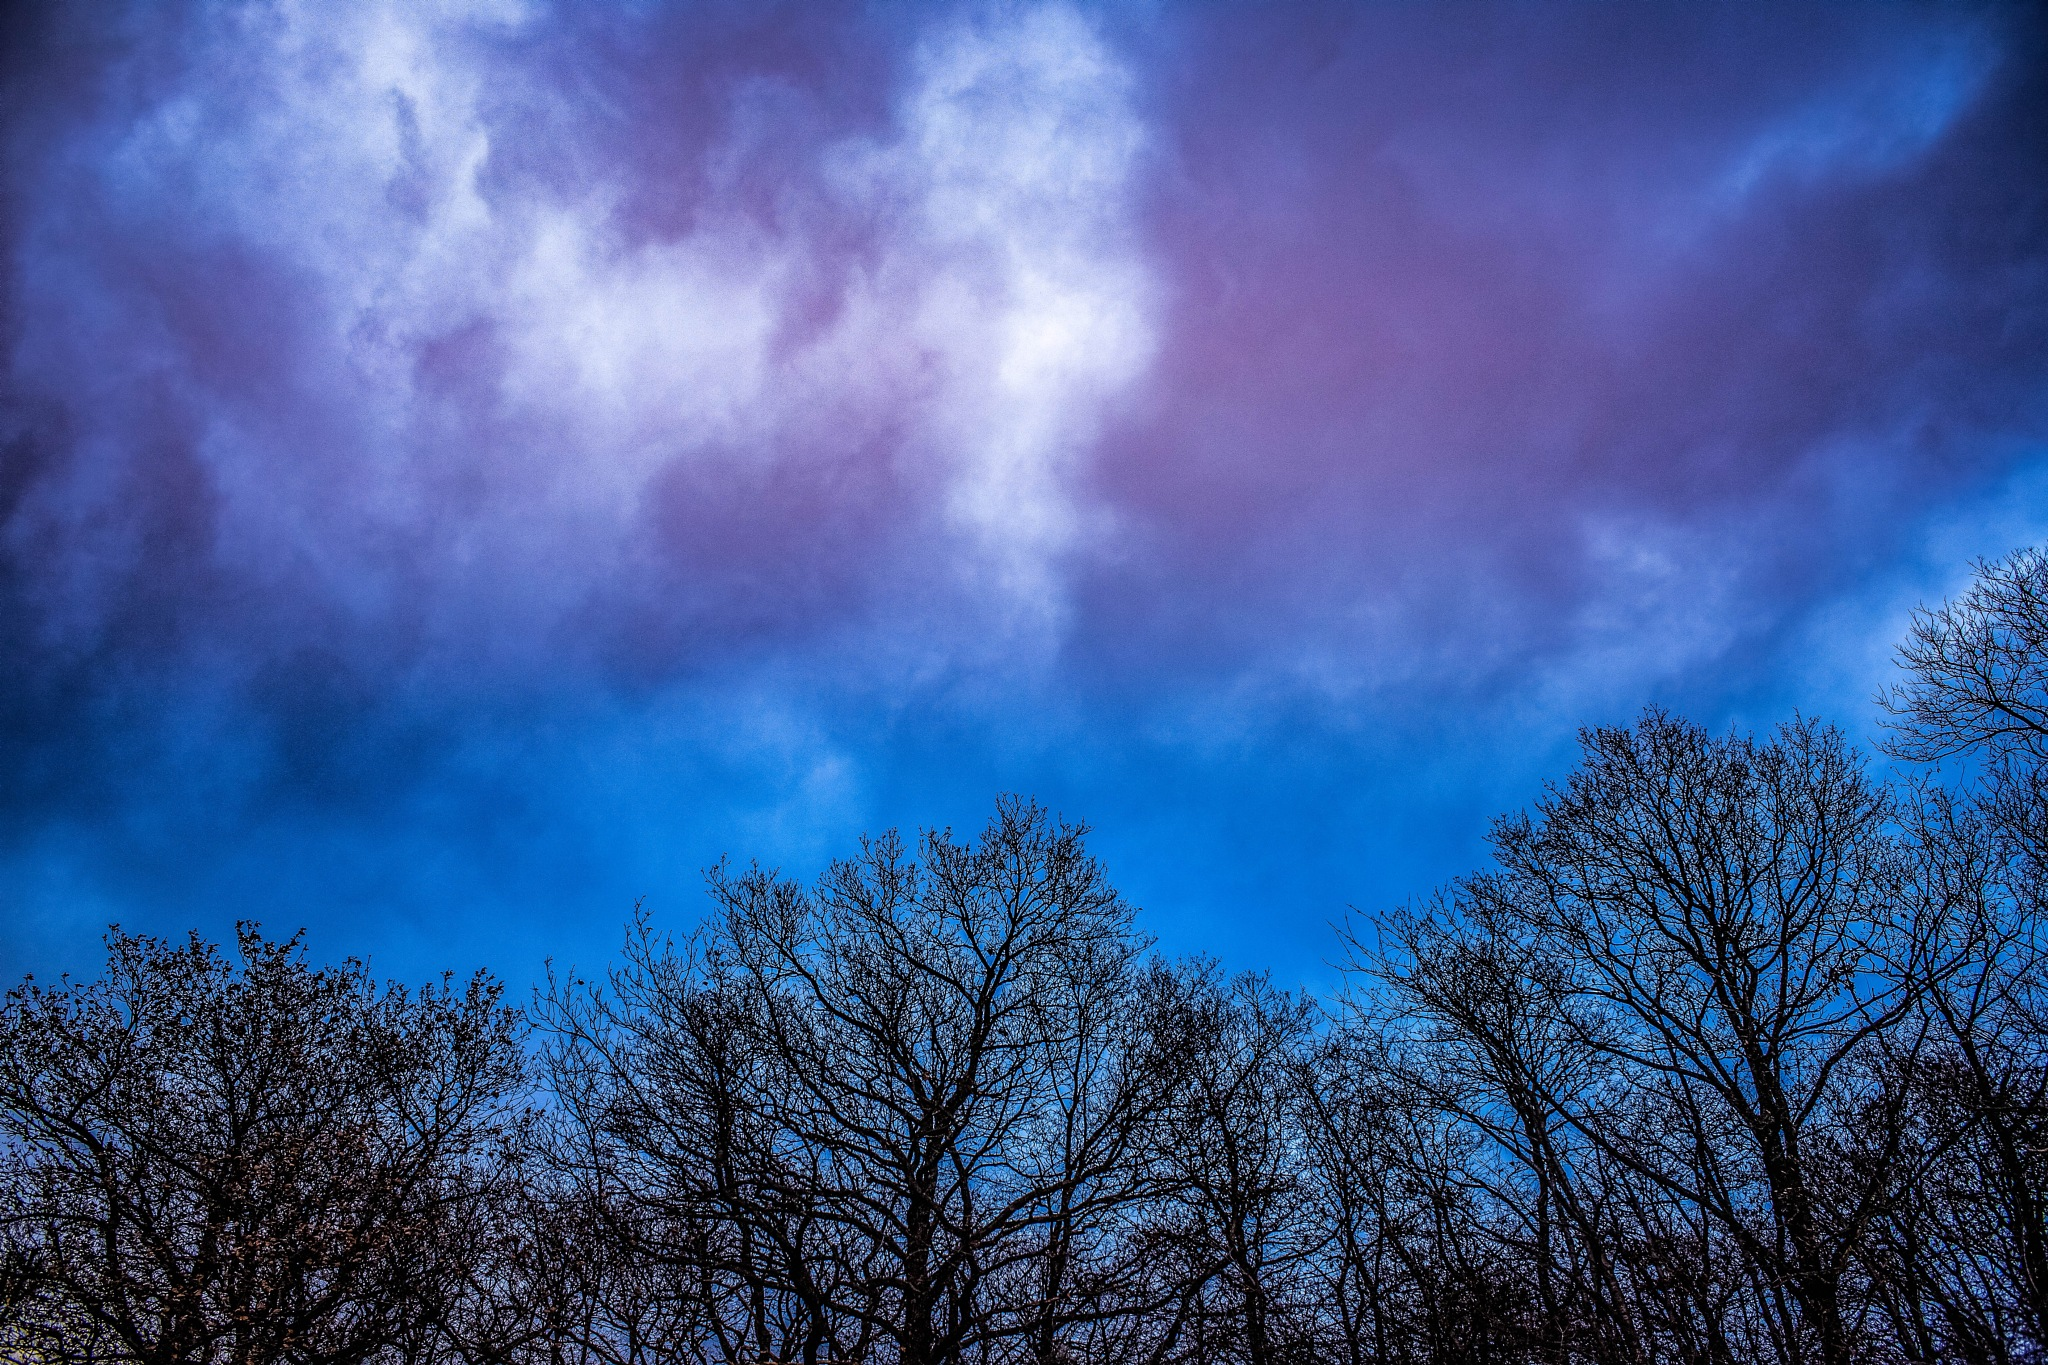 Over the trees by karlvock